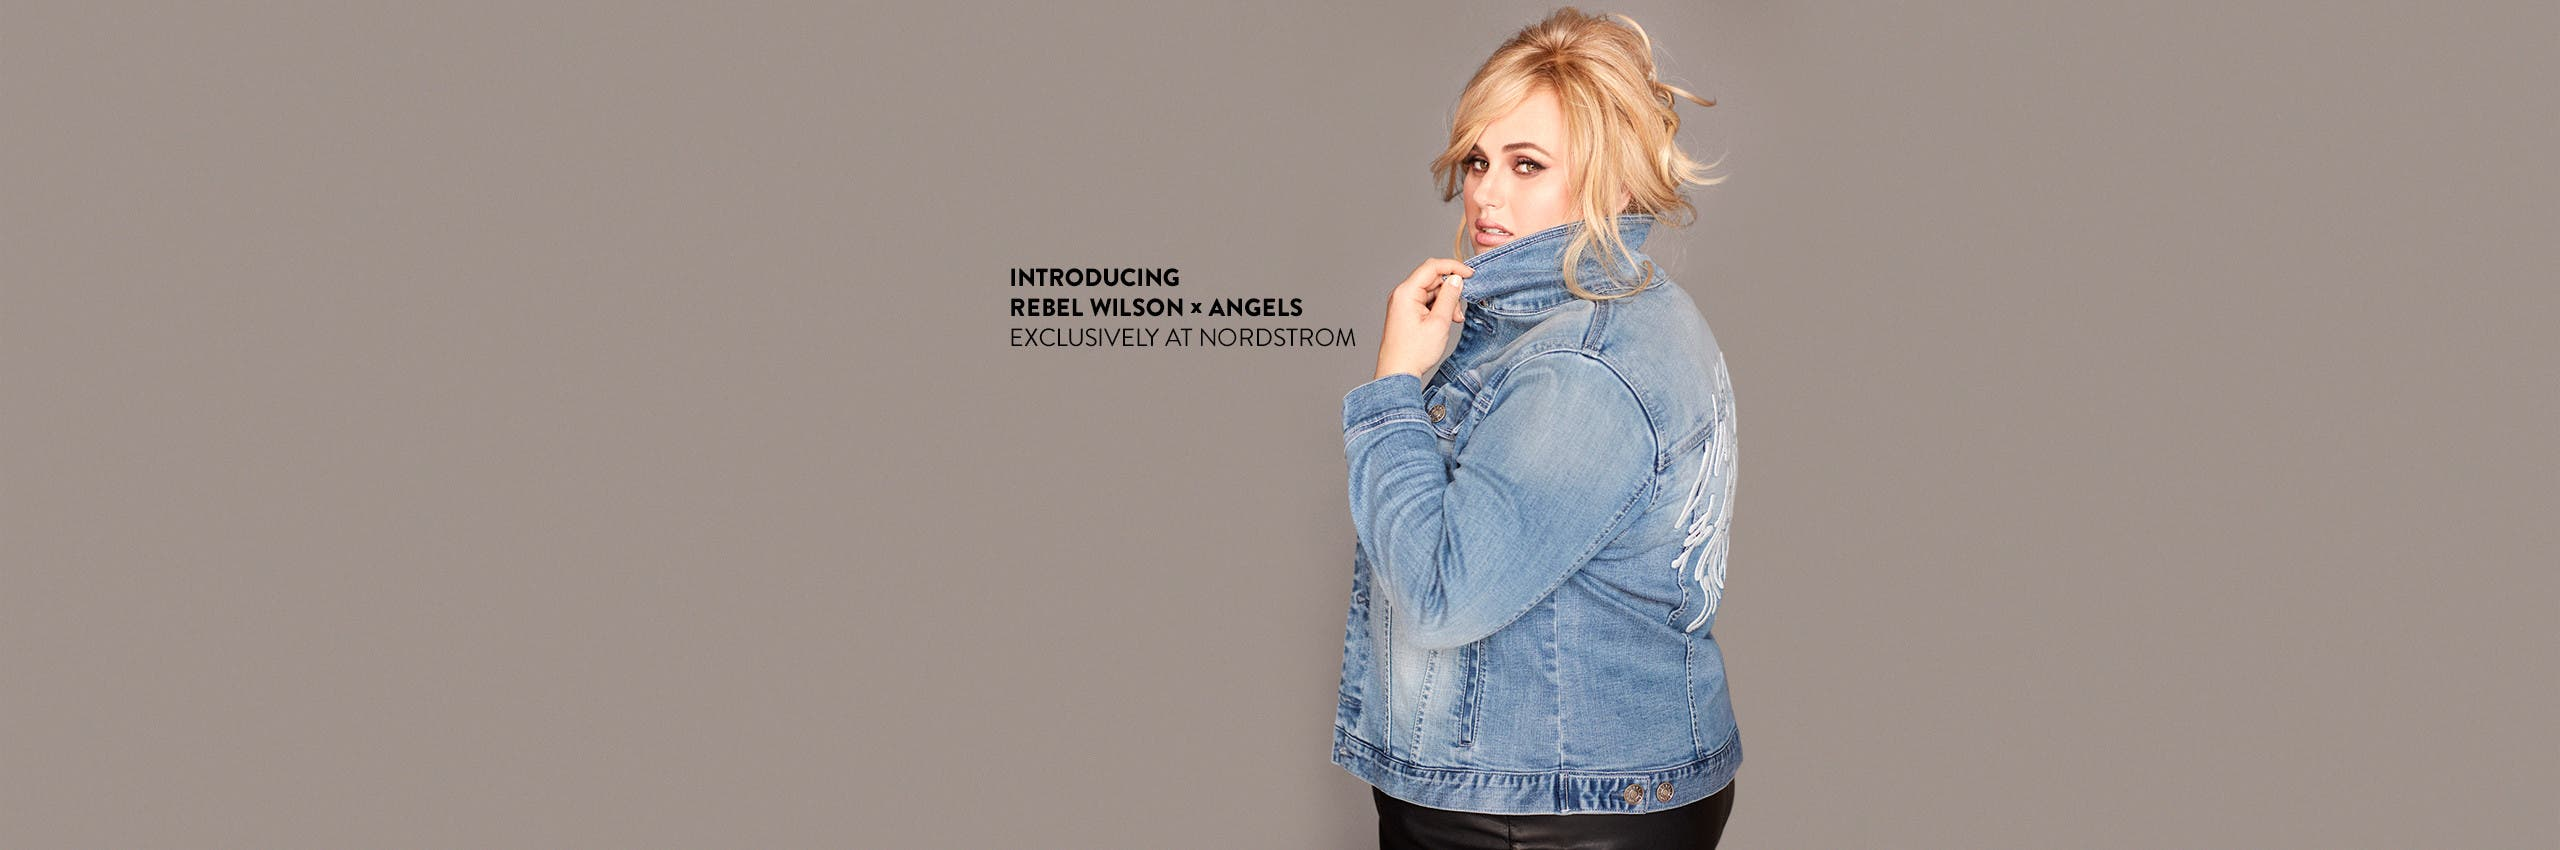 Introducing plus-size clothing from REBEL WILSON X ANGELS, exclusively at Nordstrom.